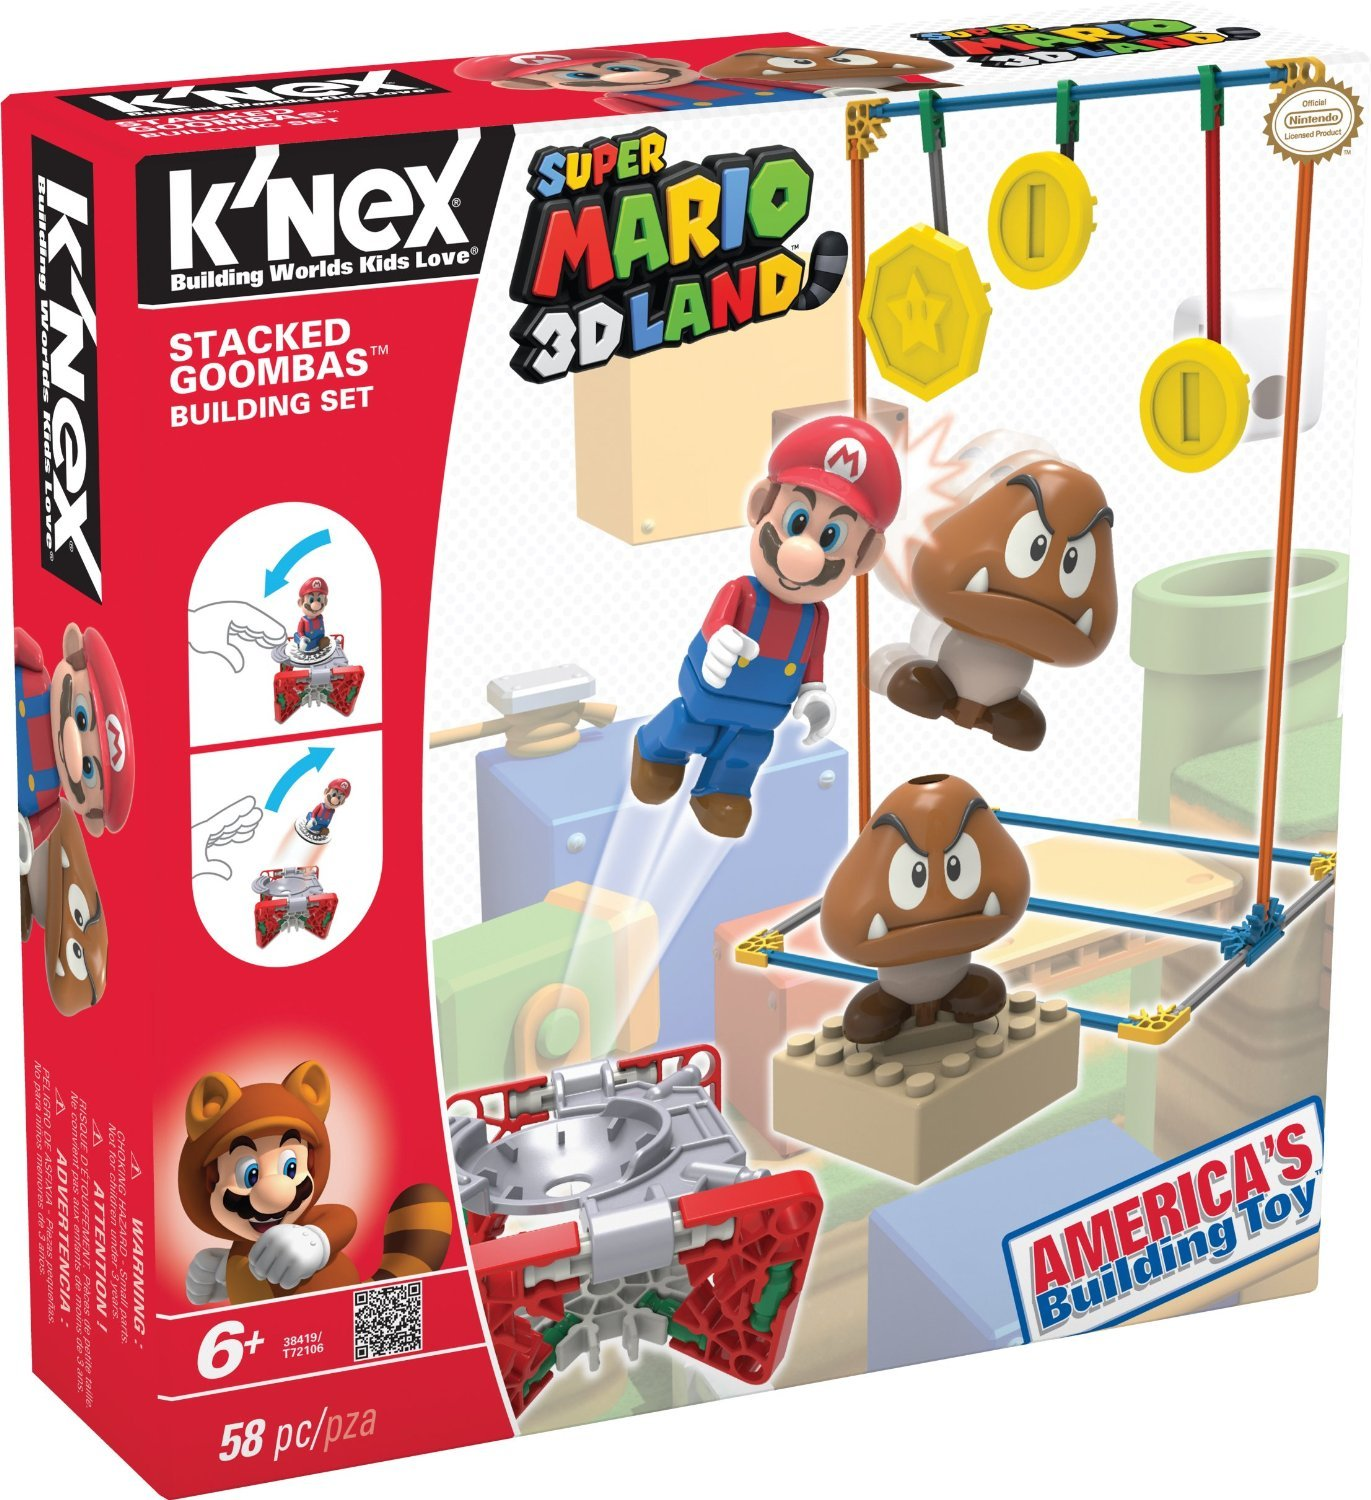 Super Mario 3D Land K'Nex Set only $9.99!